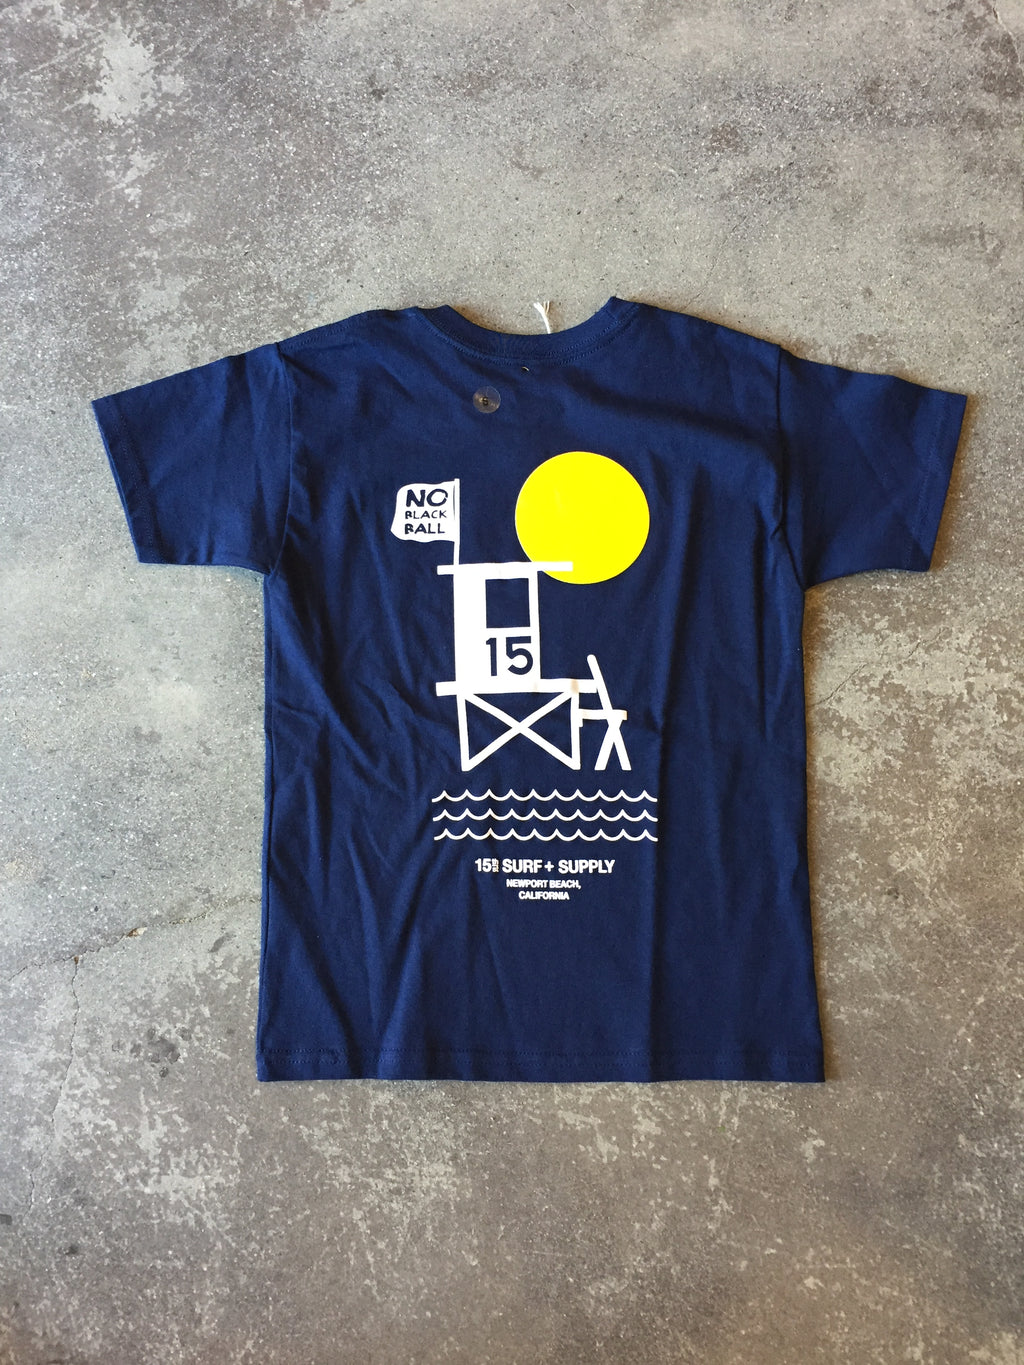 15th St Kids No Black Ball Short Sleeve T-Shirt NAVY